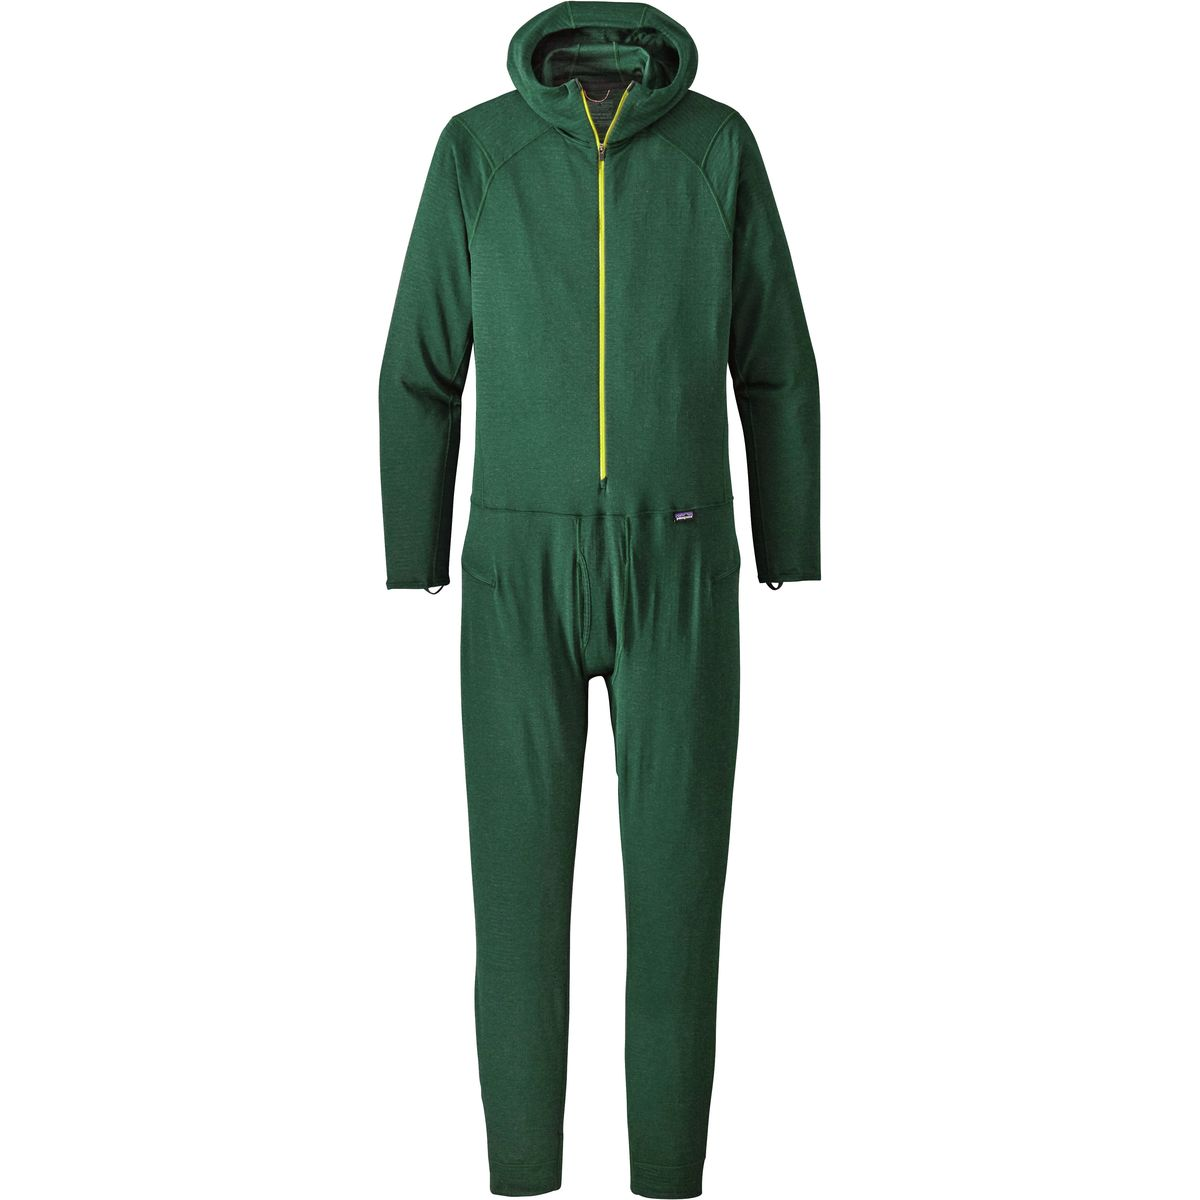 Patagonia Capilene Thermal Weight One-Piece Suit - Men